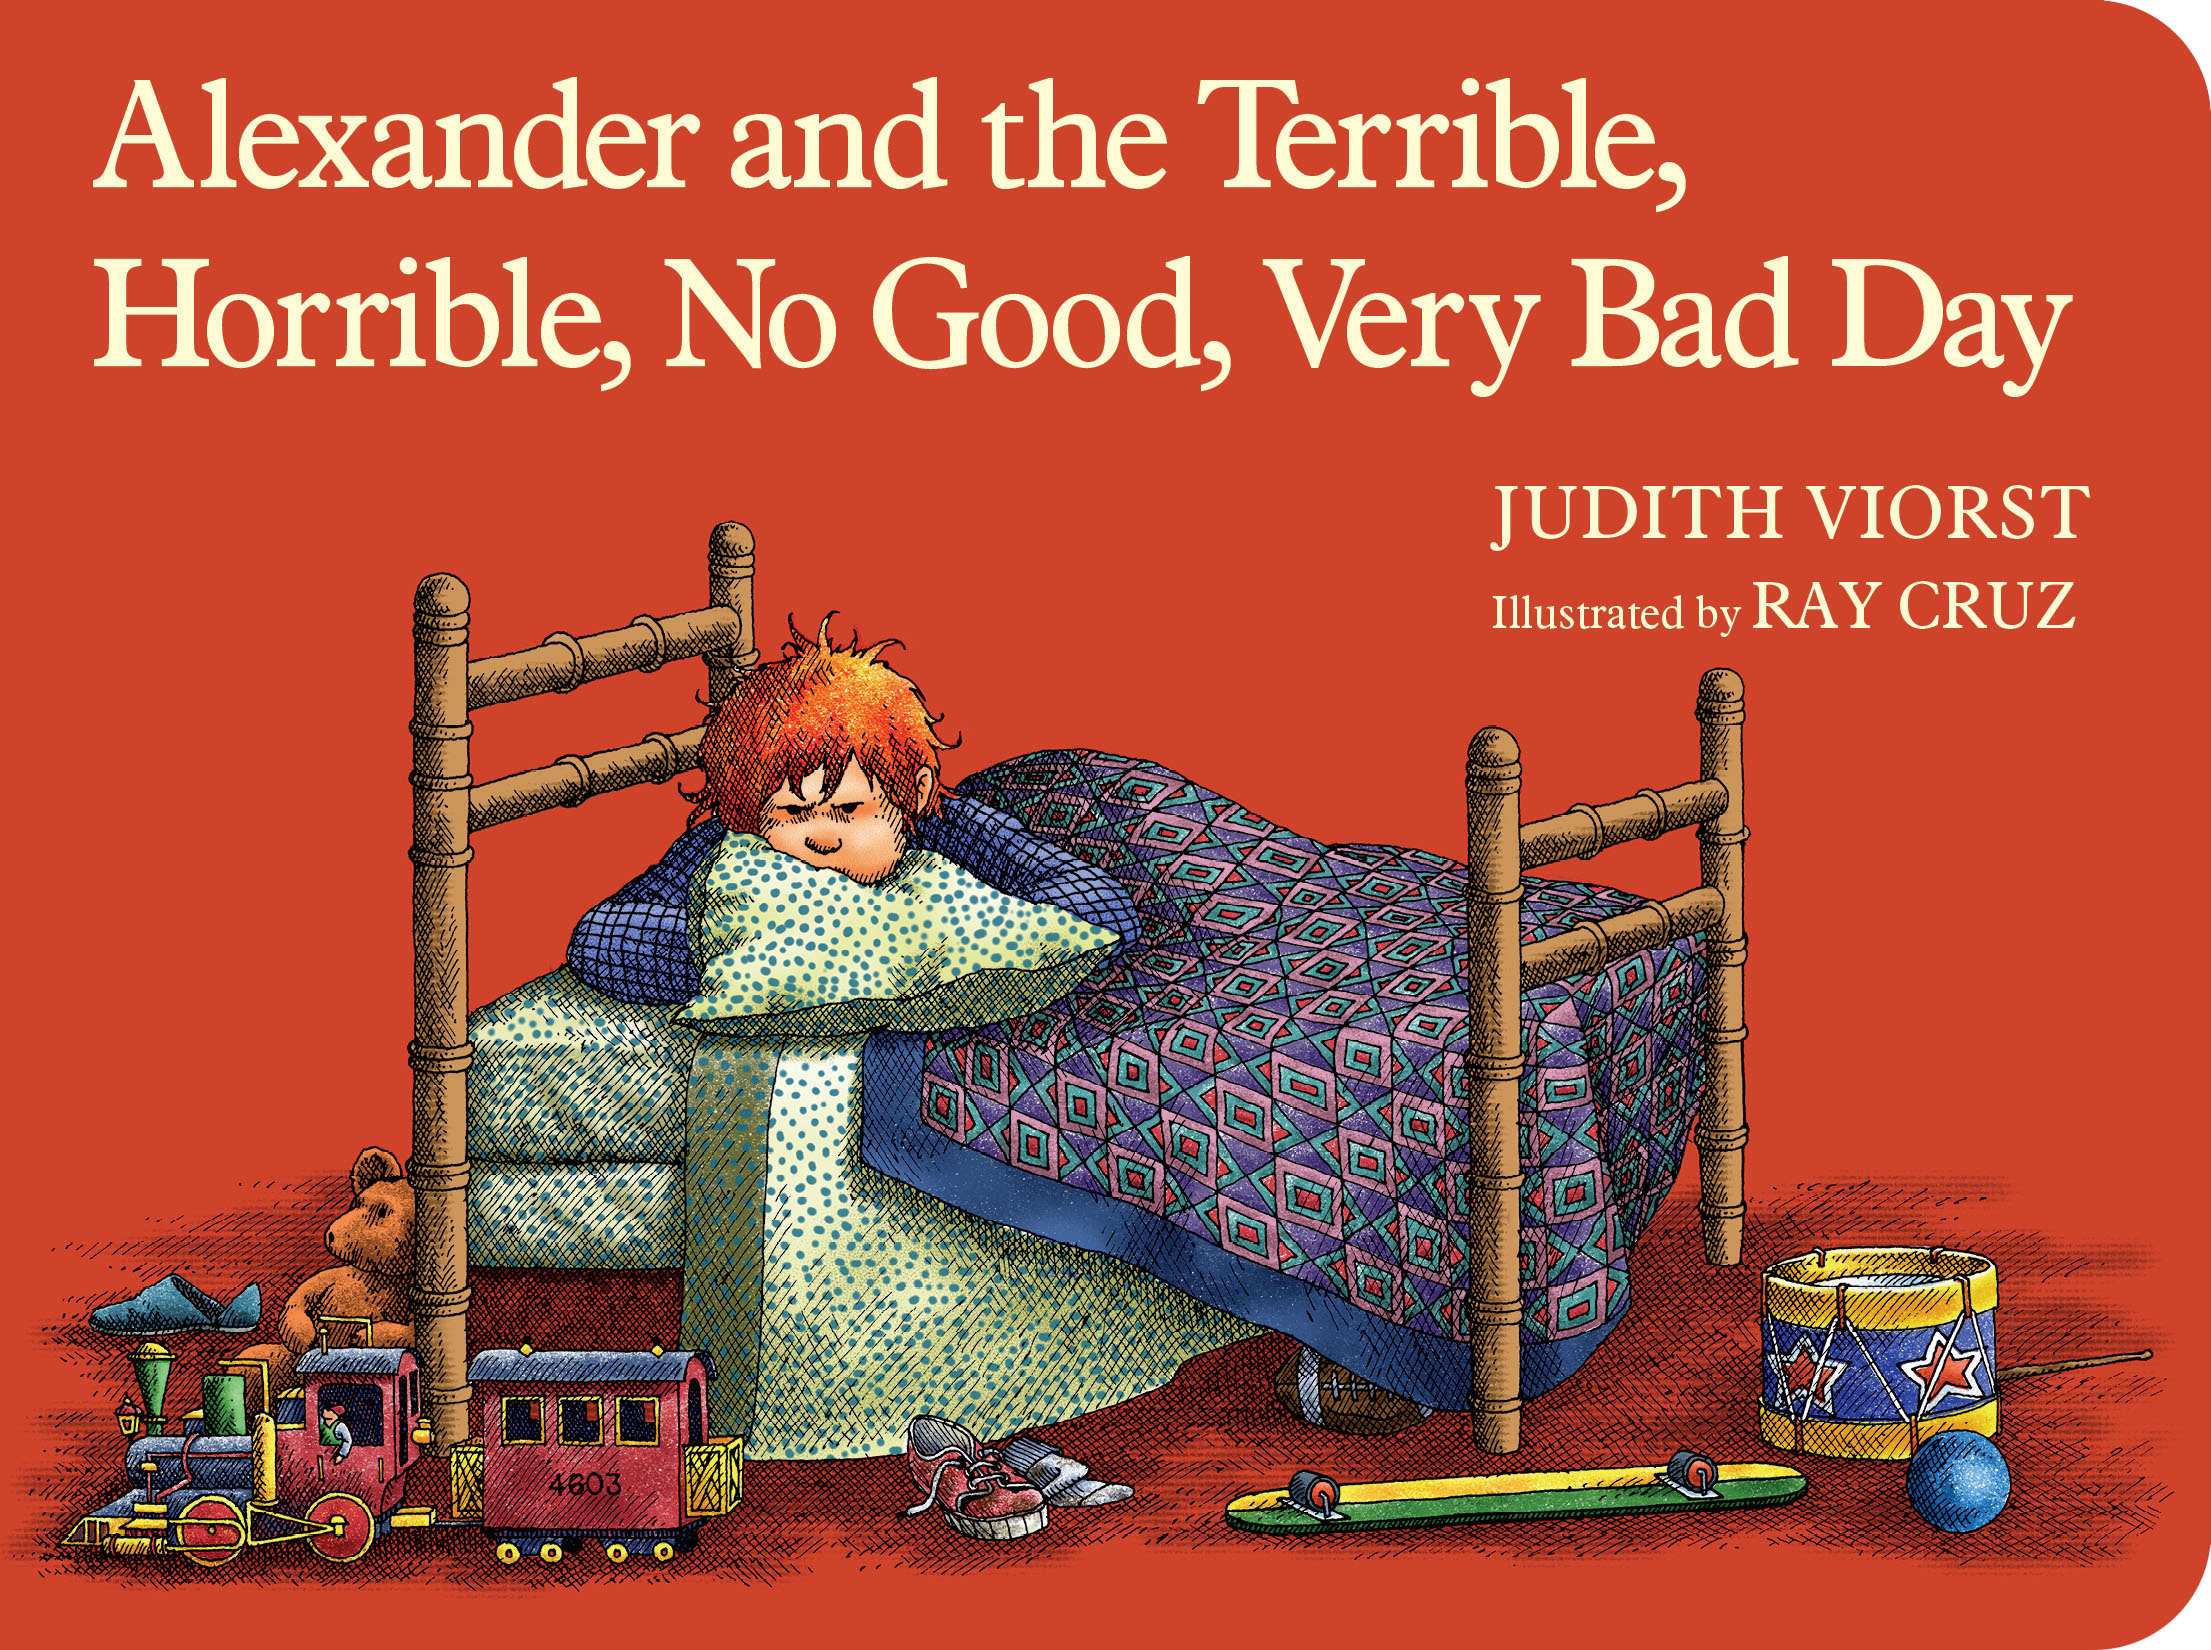 Alexander-and-the-terrible-horrible-no-good-9781442498167_hr